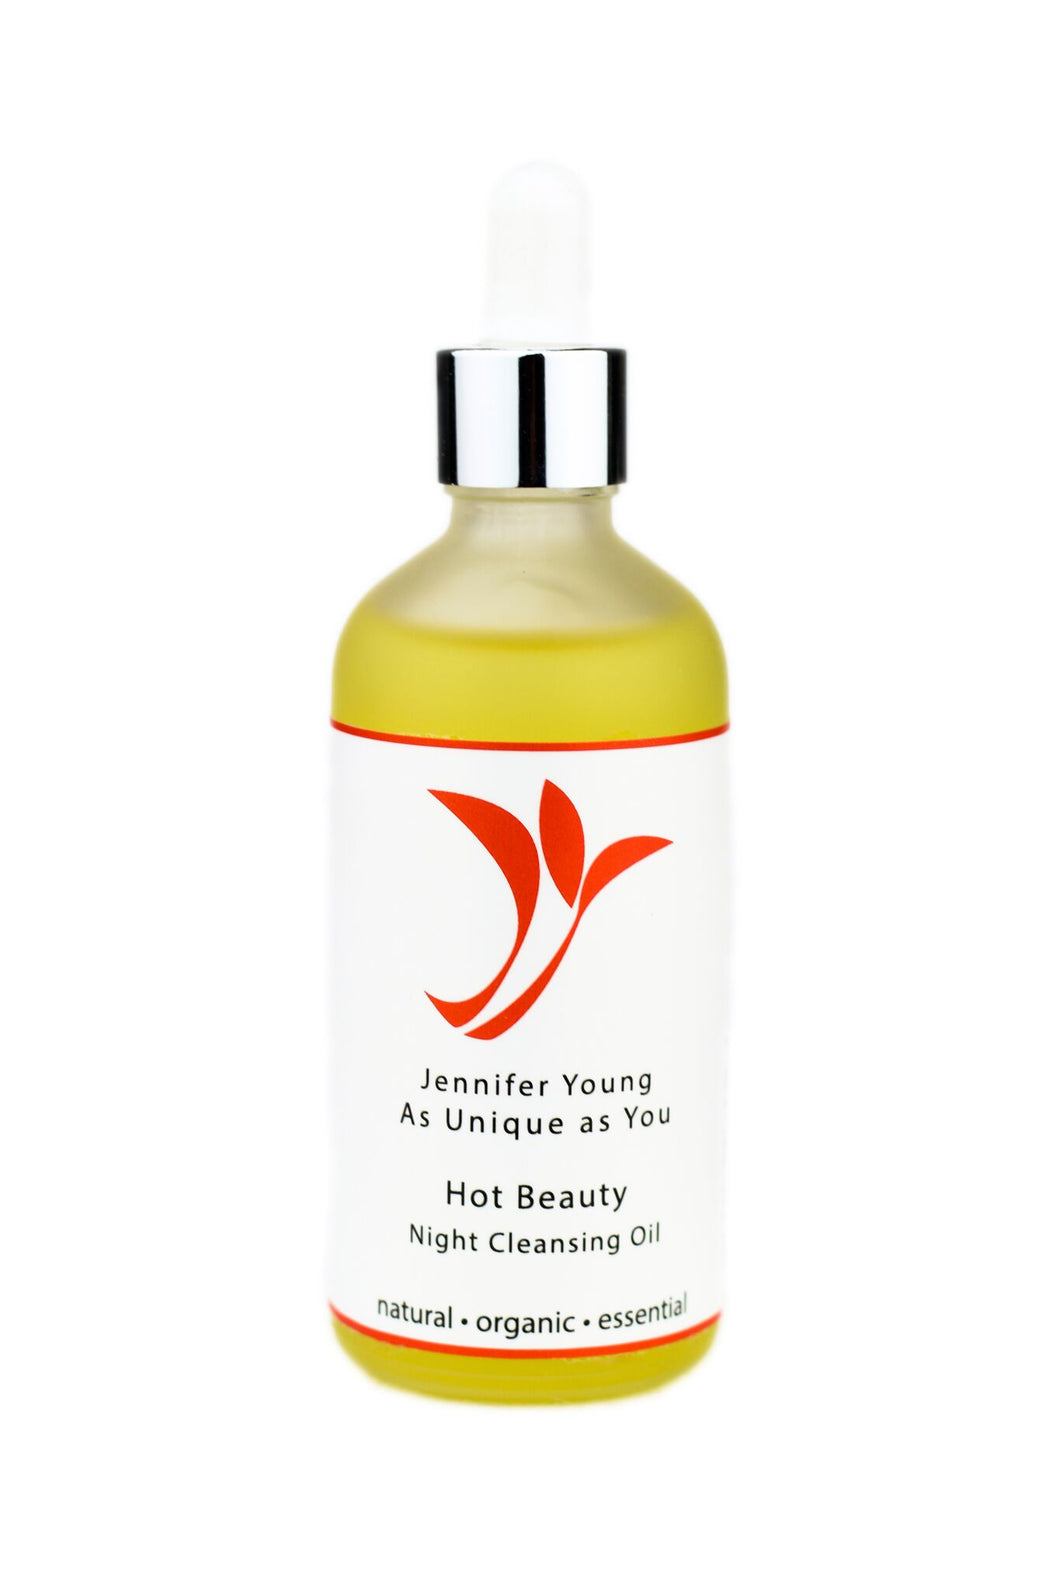 Hot Beauty Night Cleansing Oil